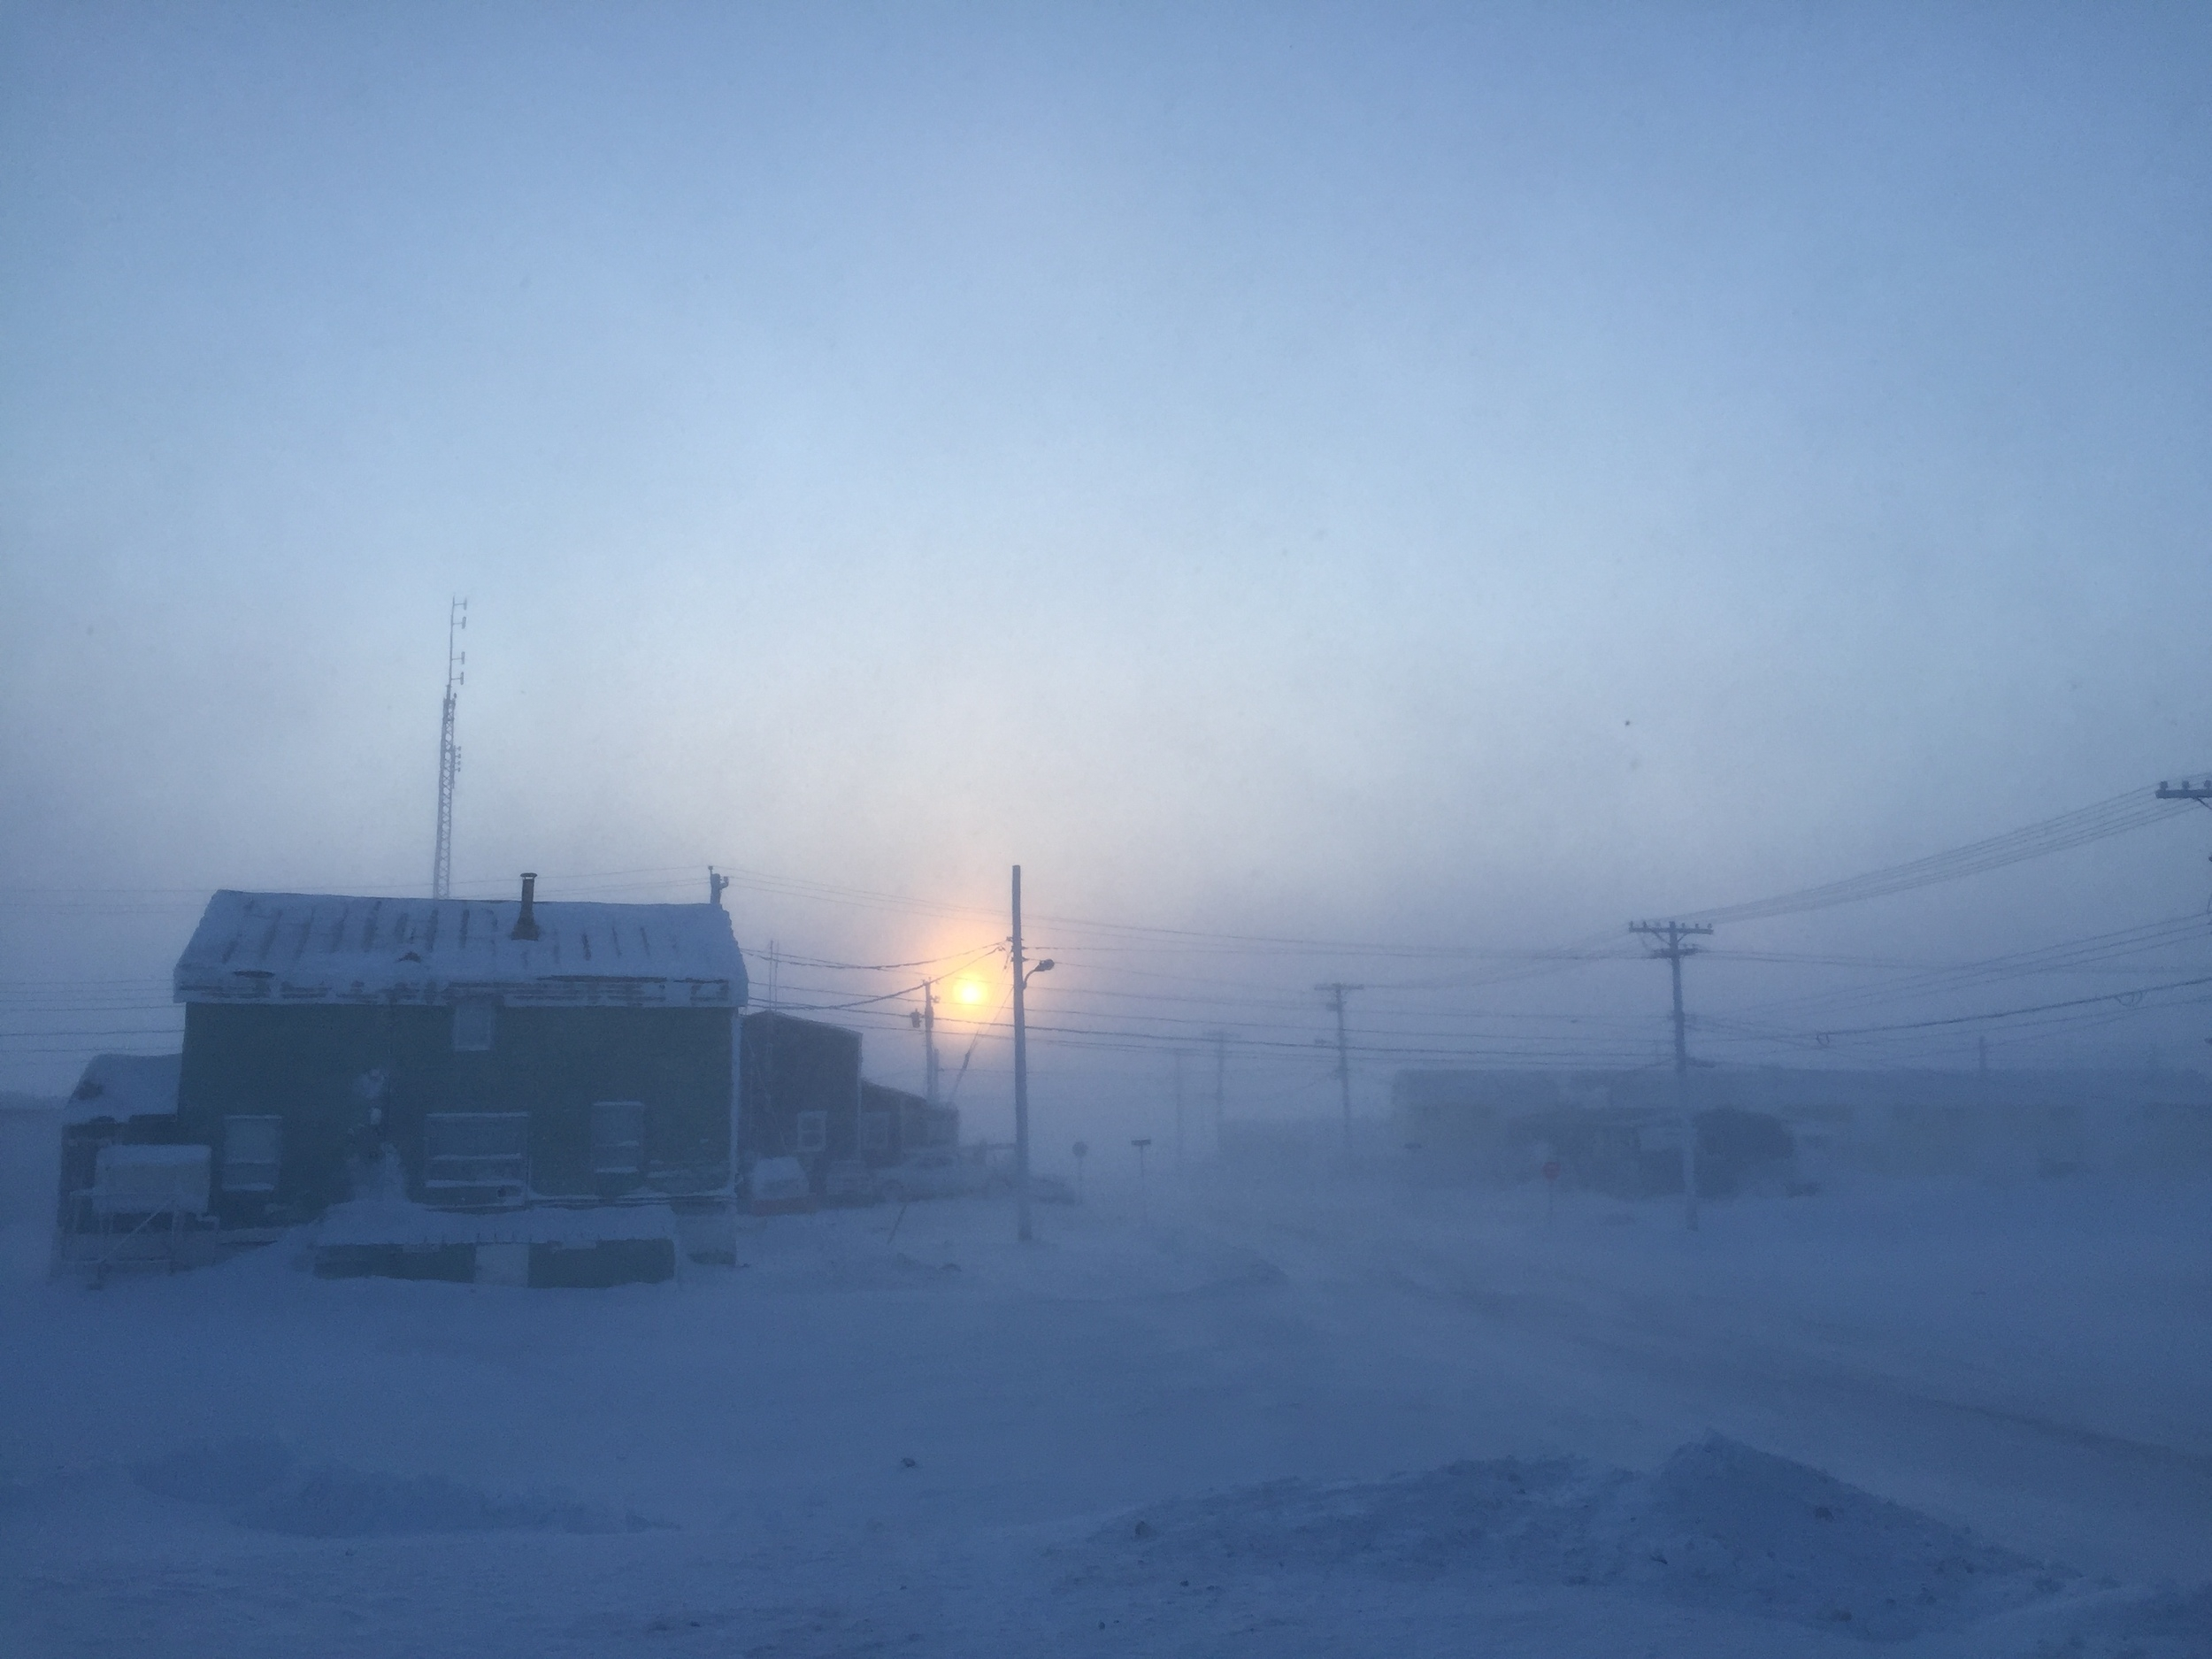 Arriving in Cambridge Bay - Chilly